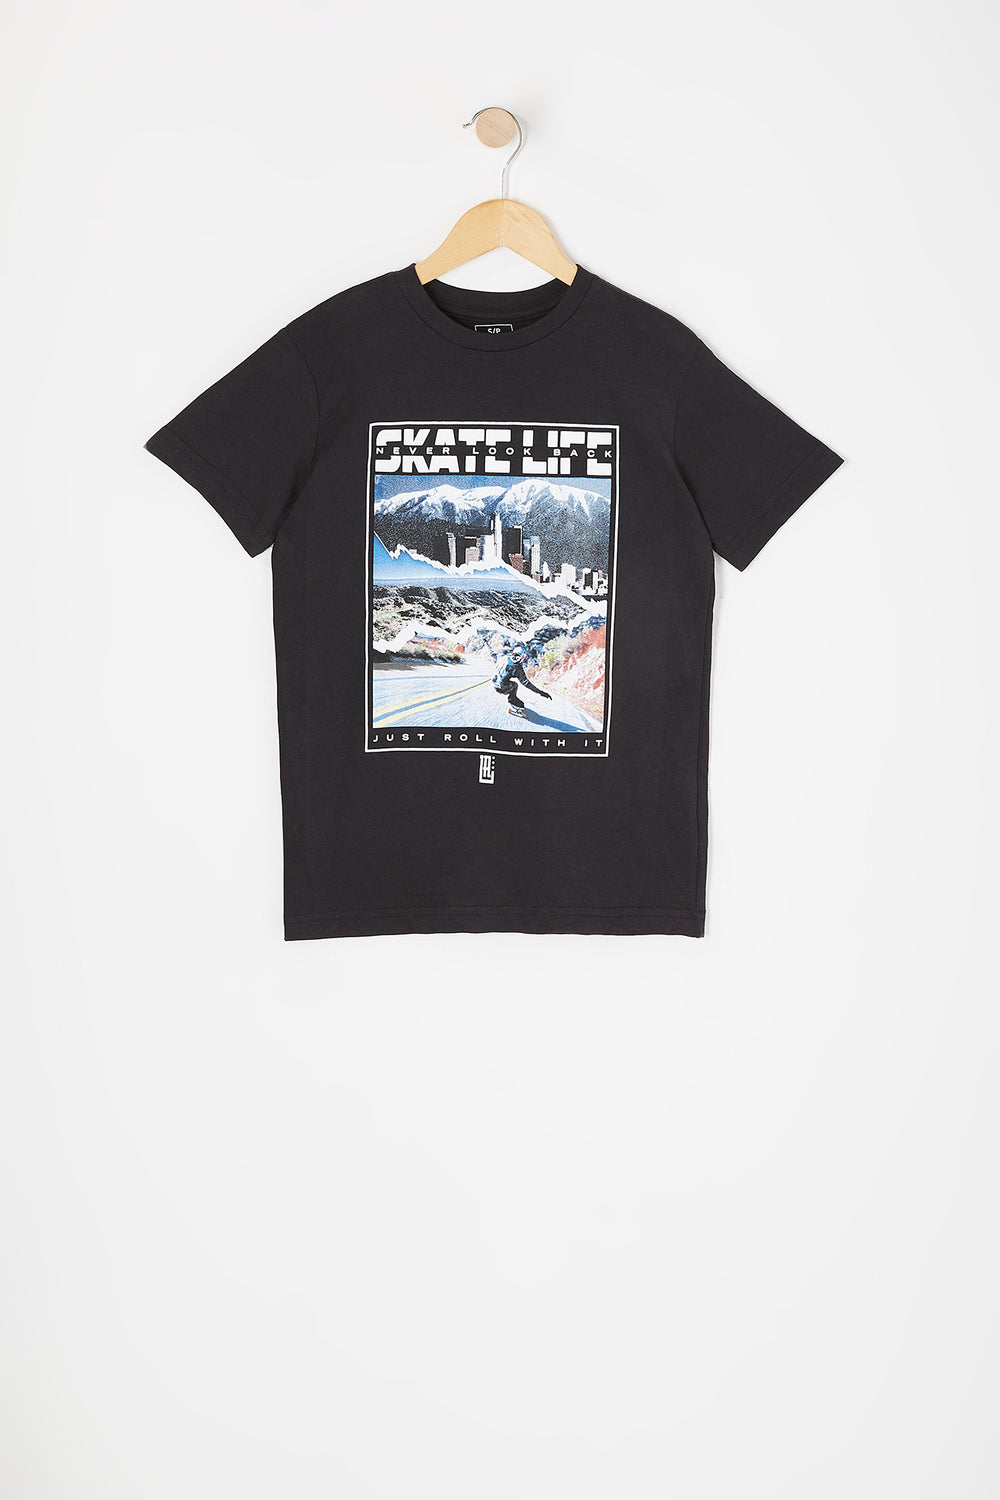 Boys Skate Life Never Look Back Graphic T-Shirt Black